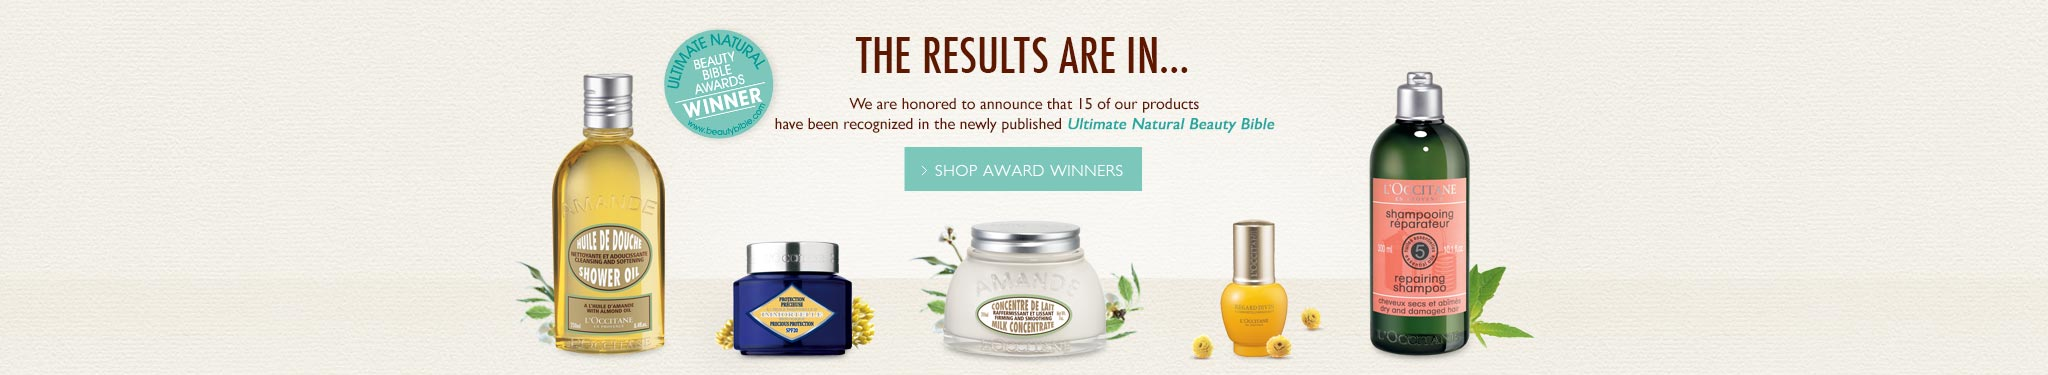 The Results Are In...We are honored to announce that 15 of our products have been recognized in the newly published Ultimate Natural Beauty Bible